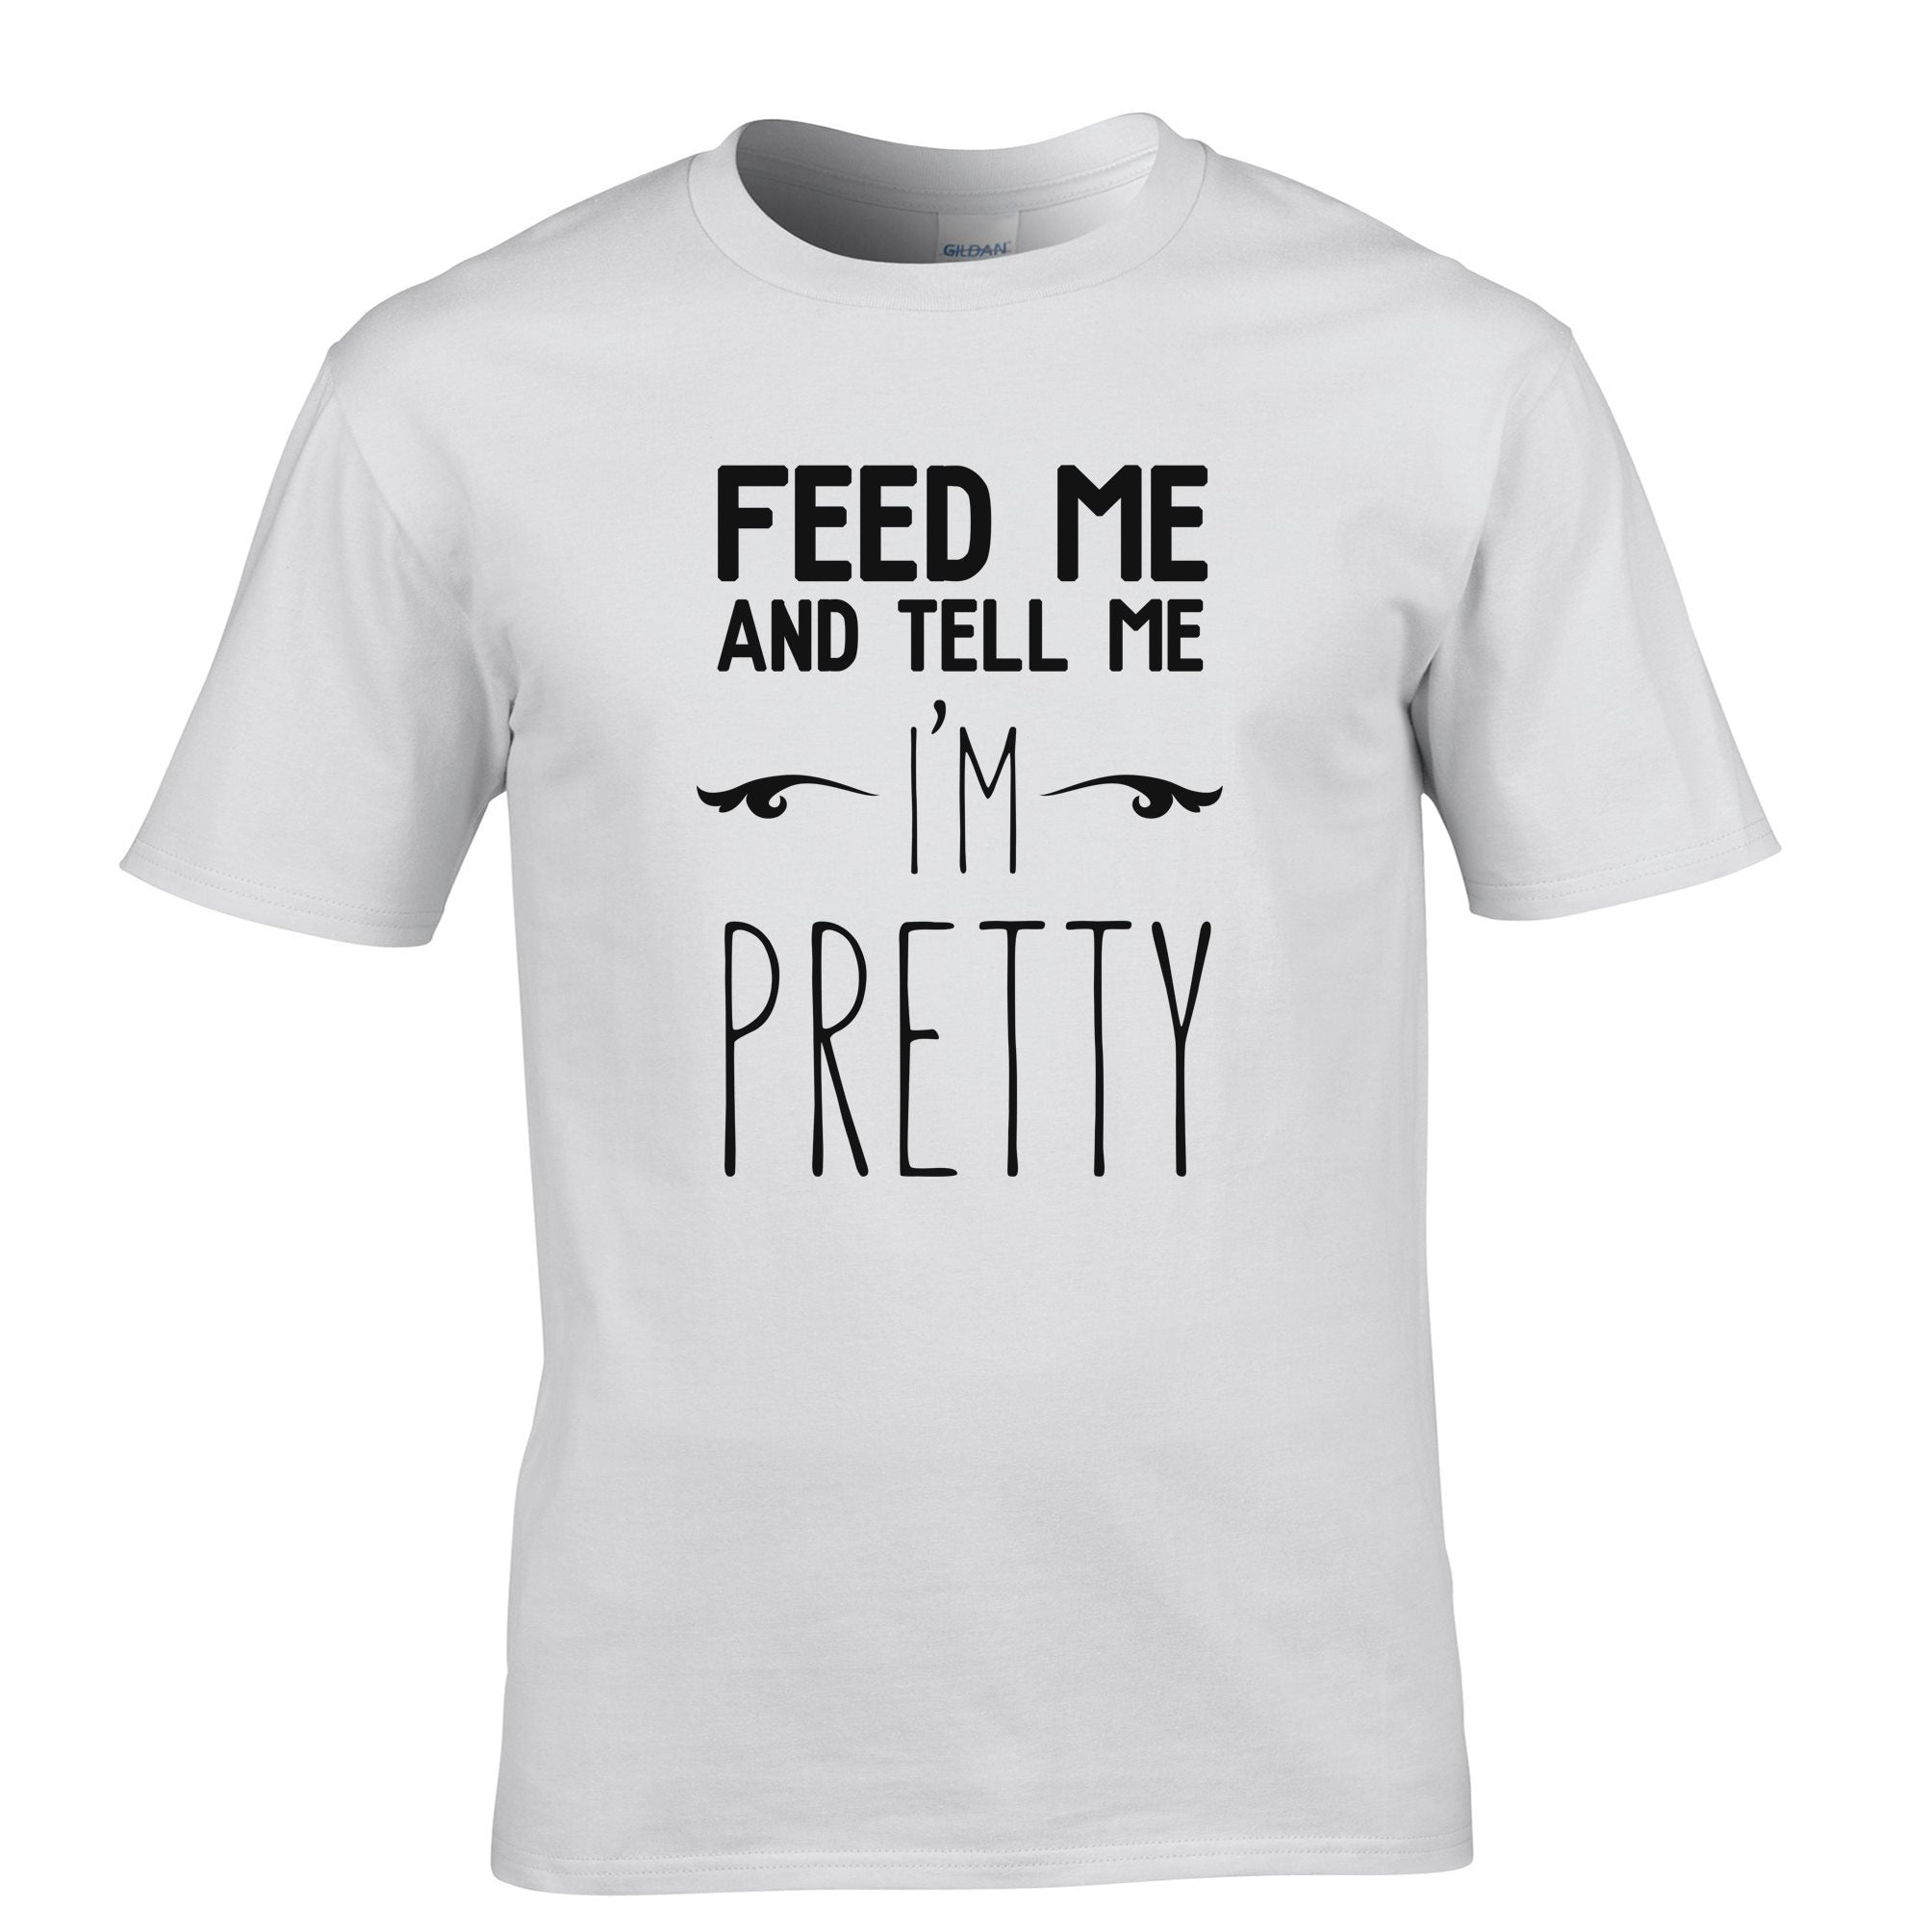 Novelty T Shirt Feed Me And Tell Me I'm Pretty Slogan